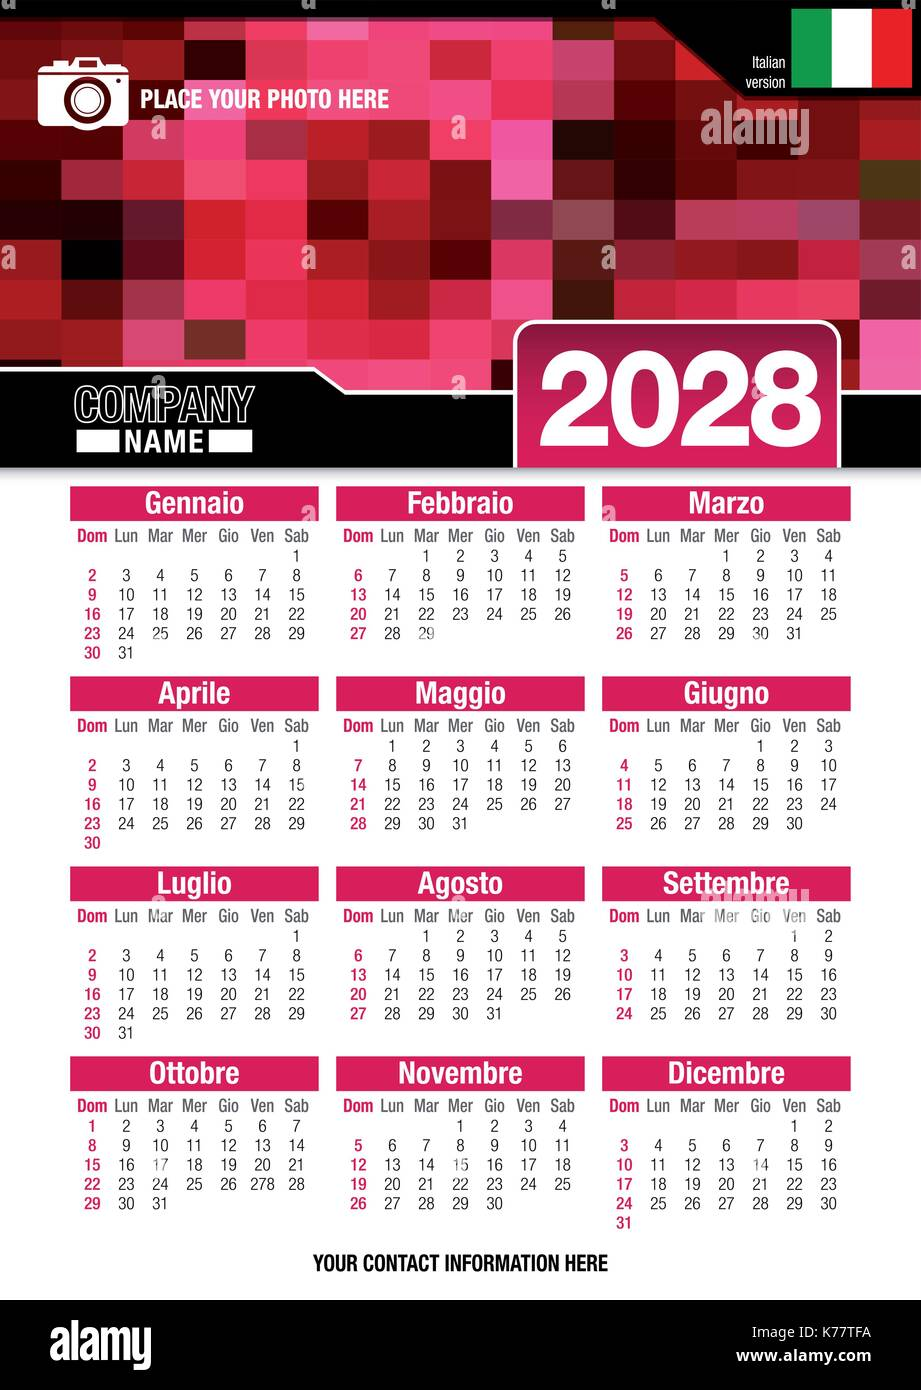 Useful wall calendar 2028 with design of red colors mosaic. Format A4 vertical. Size: 210mm x 297mm. Italian version Stock Vector